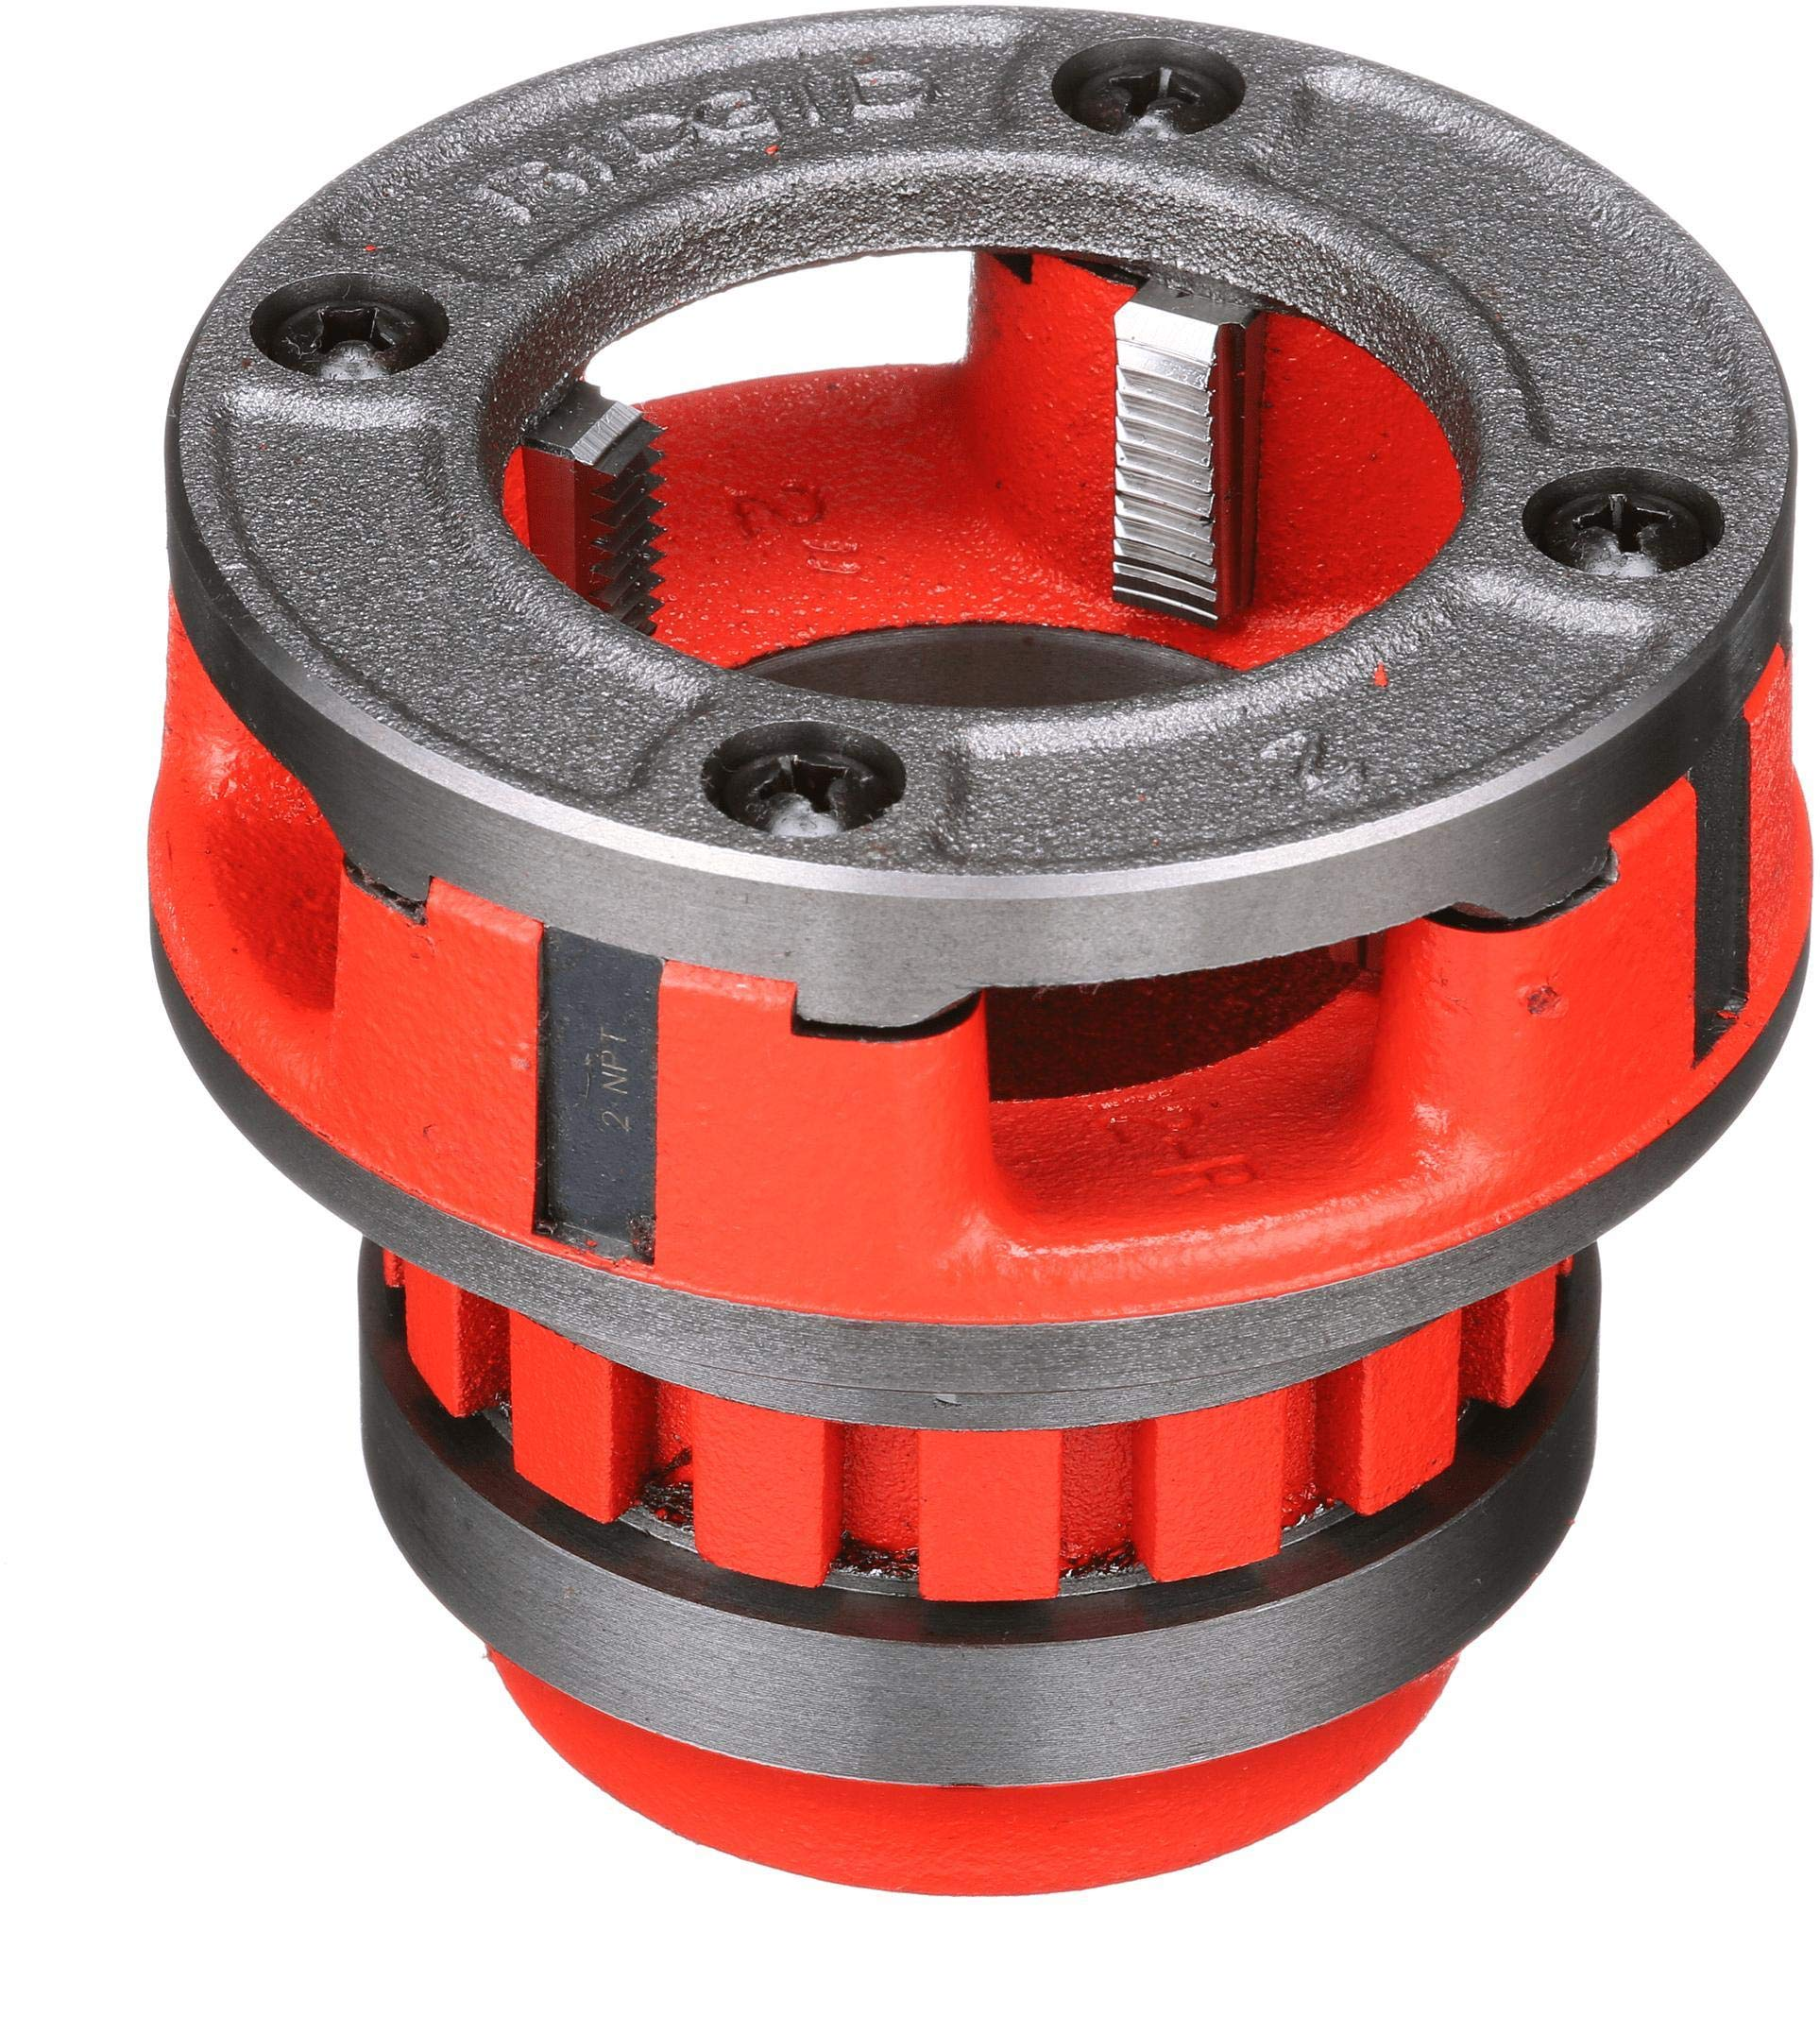 RIDGID 37415 Model 12-R Hand Threader Die Head, Alloy Right-Handed NPT Die Head for Nominal Pipe Size of 2-Inches